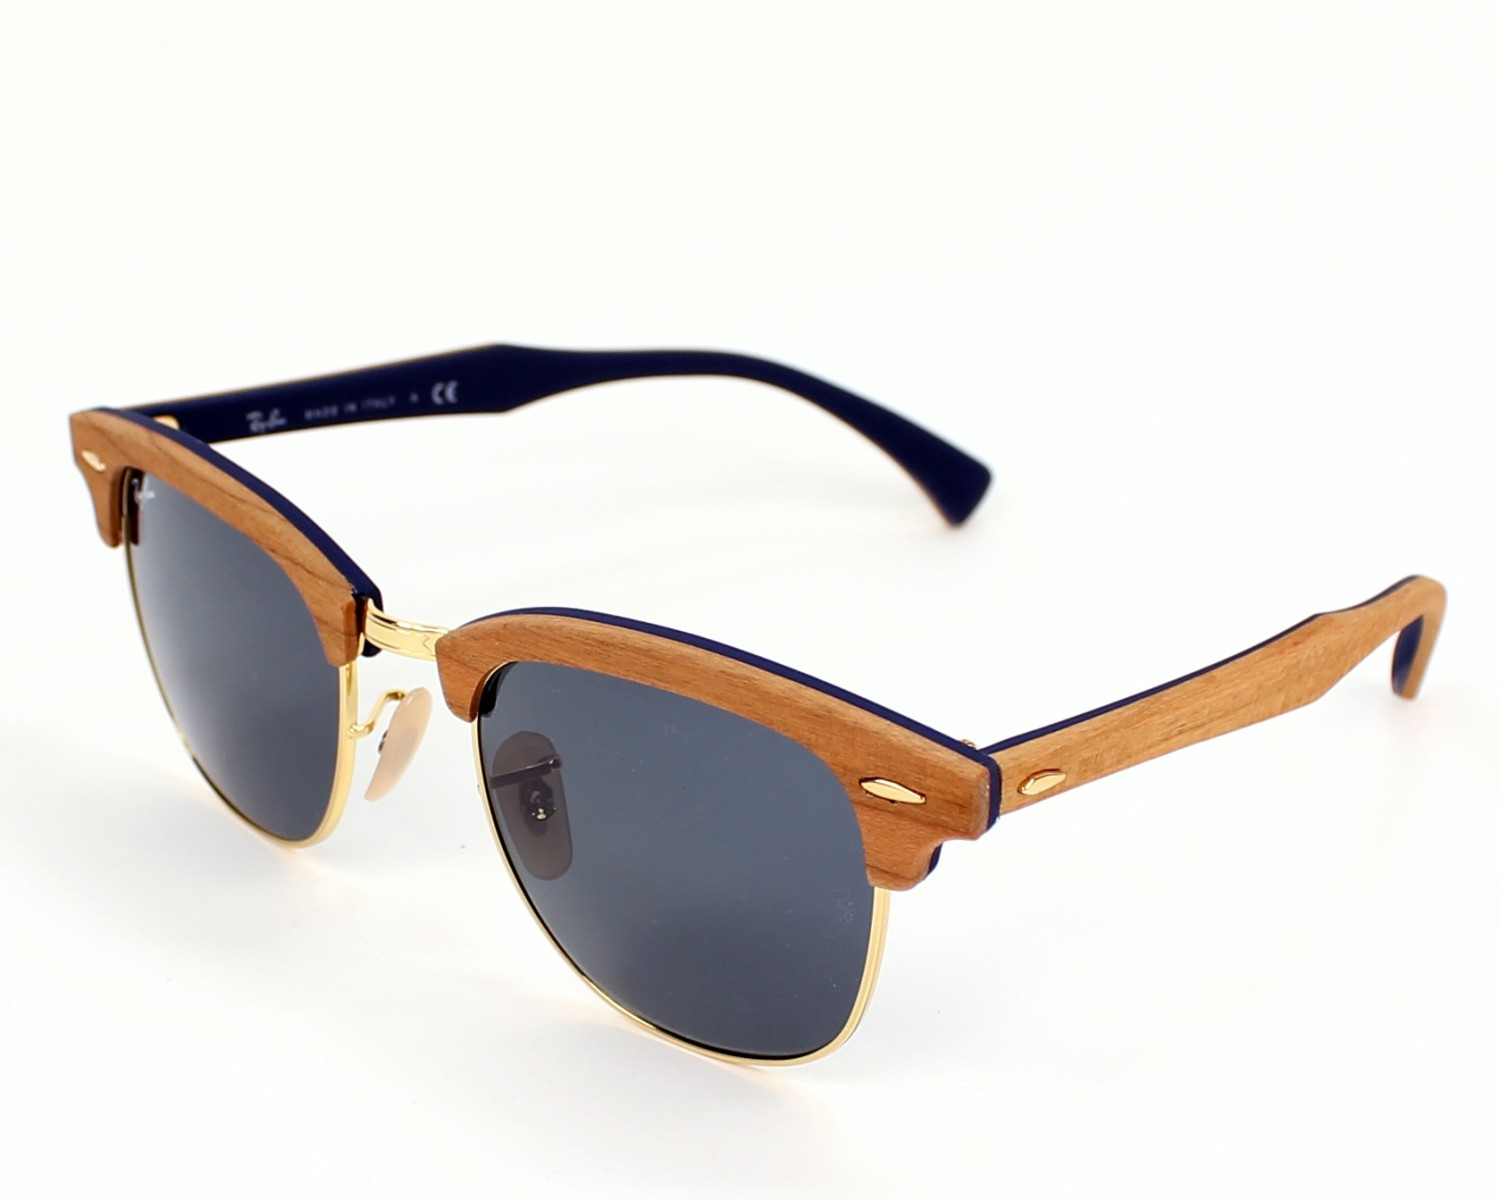 Ray Ban Sunglasses Clubmaster 1s5z